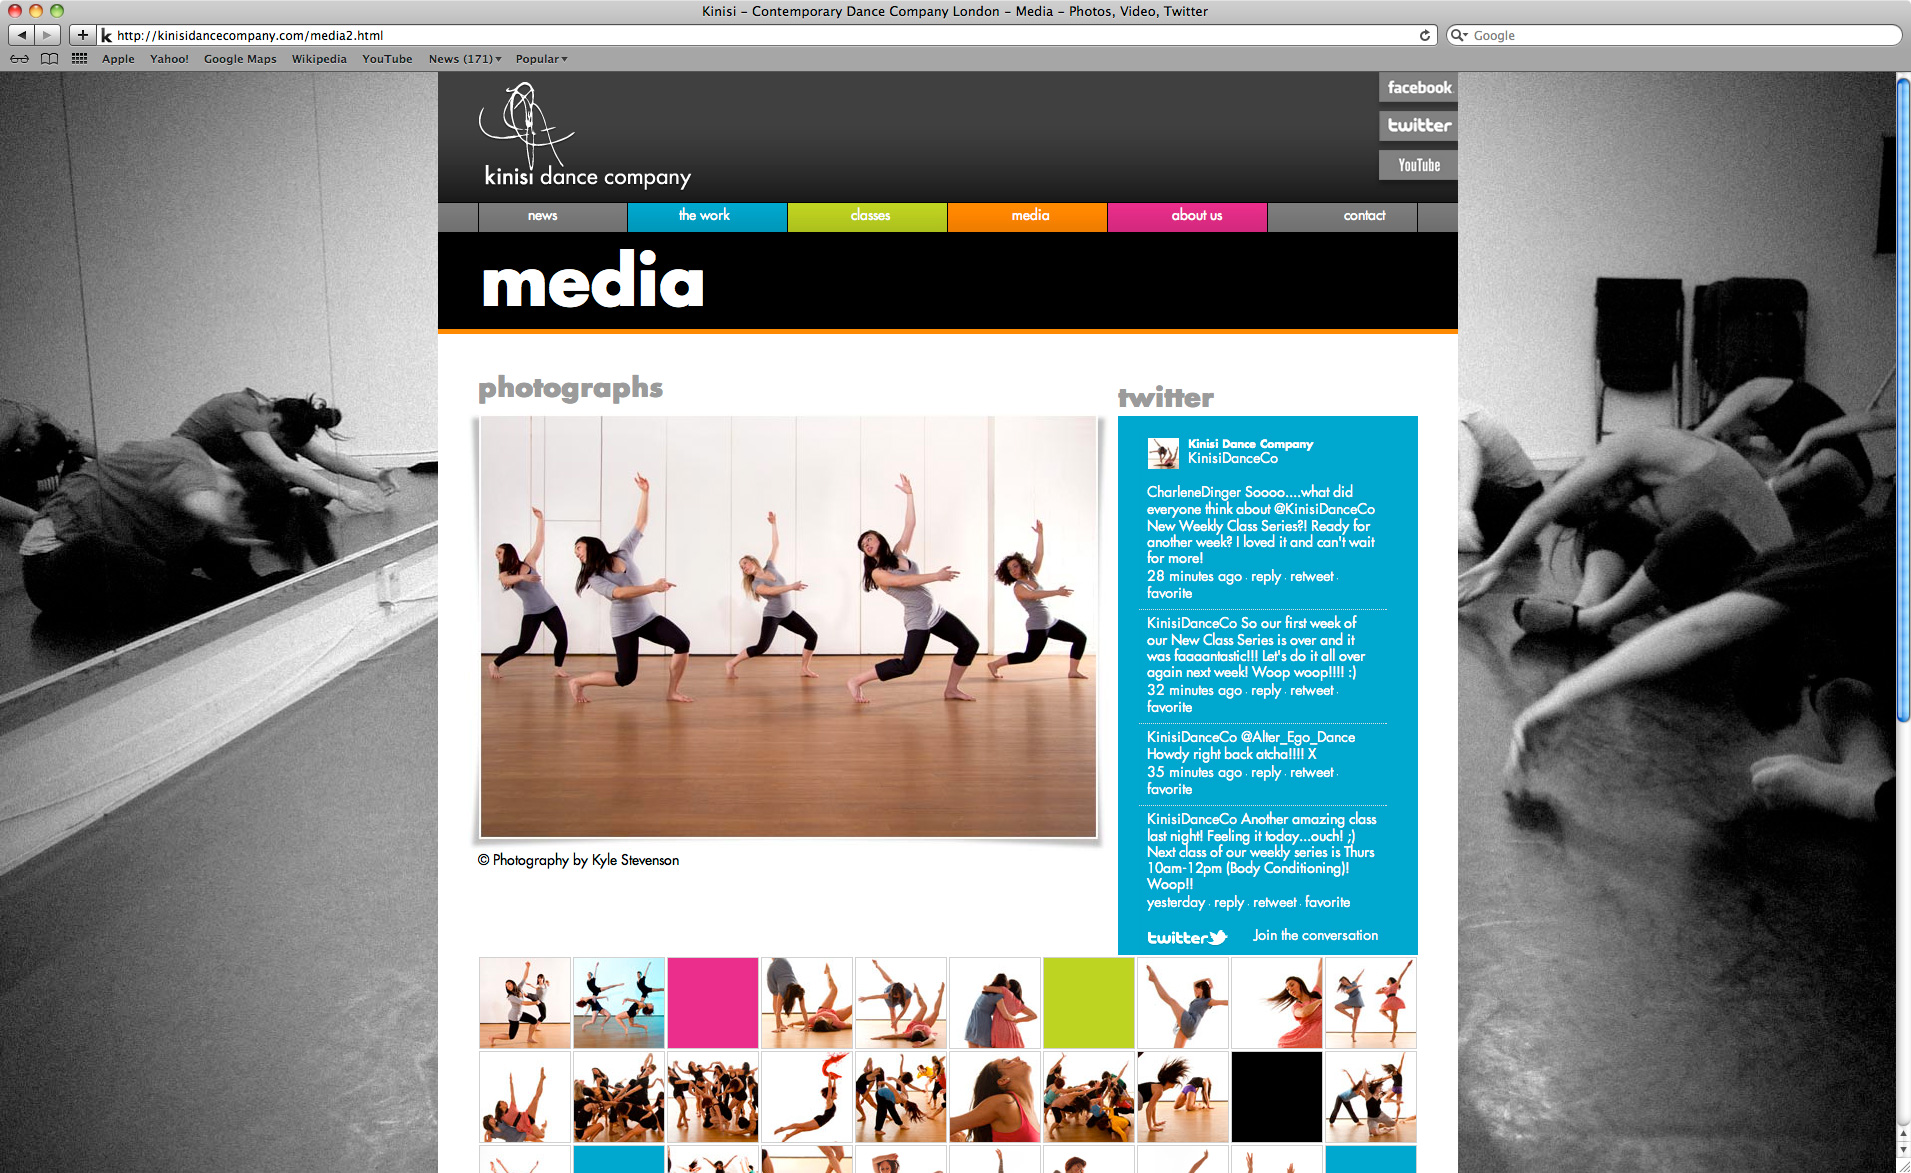 Kinisi Dance Company Website - Media Page